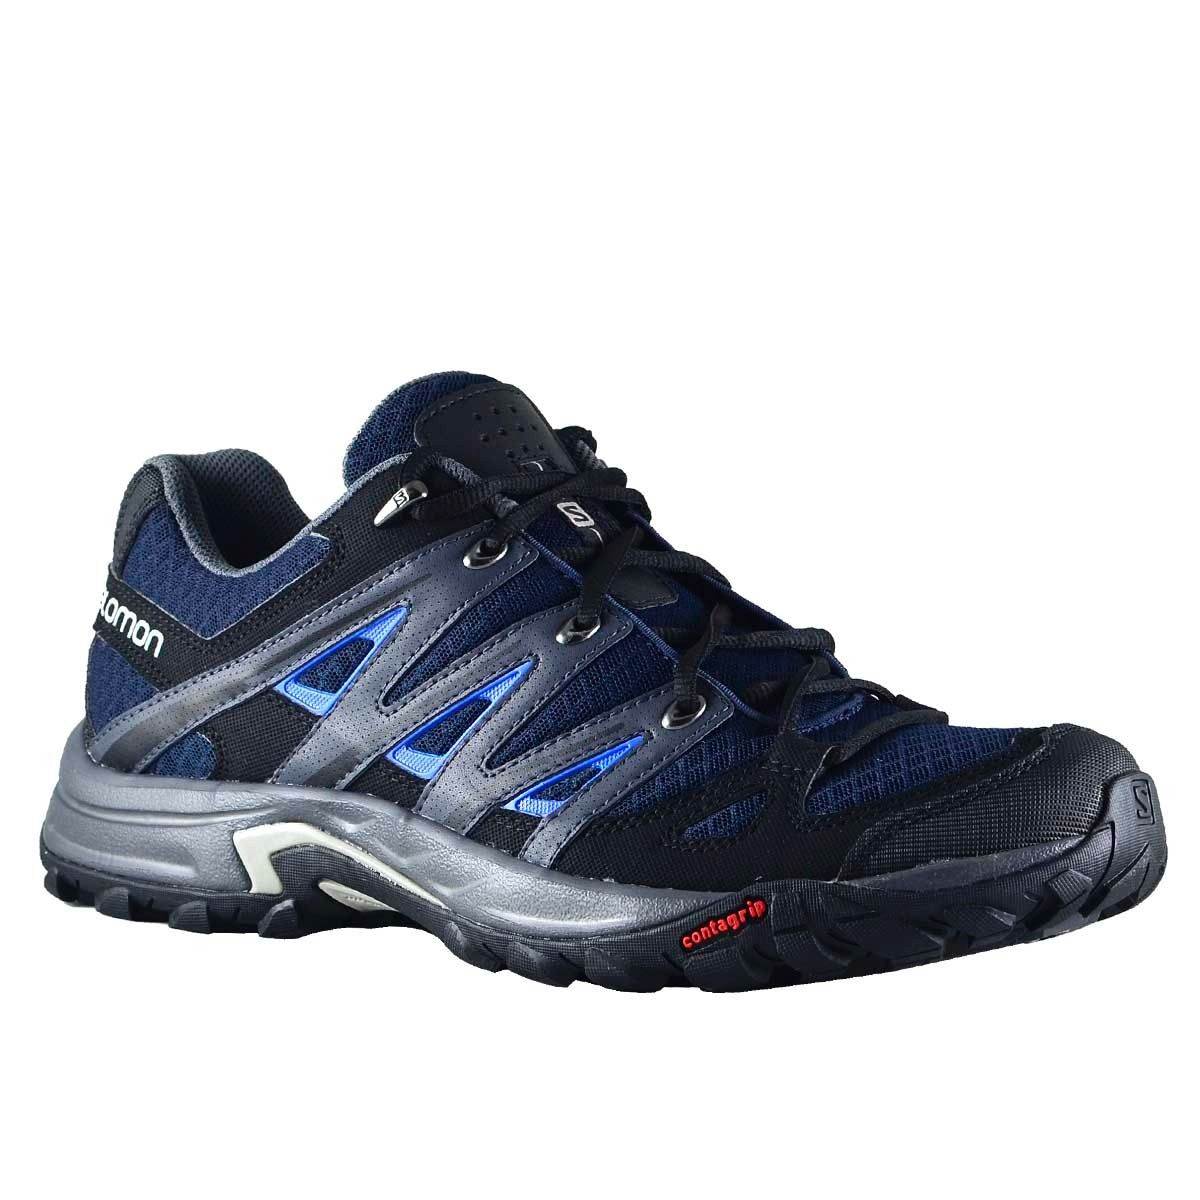 salomon fellraiser women's trail running shoes queretaro germany